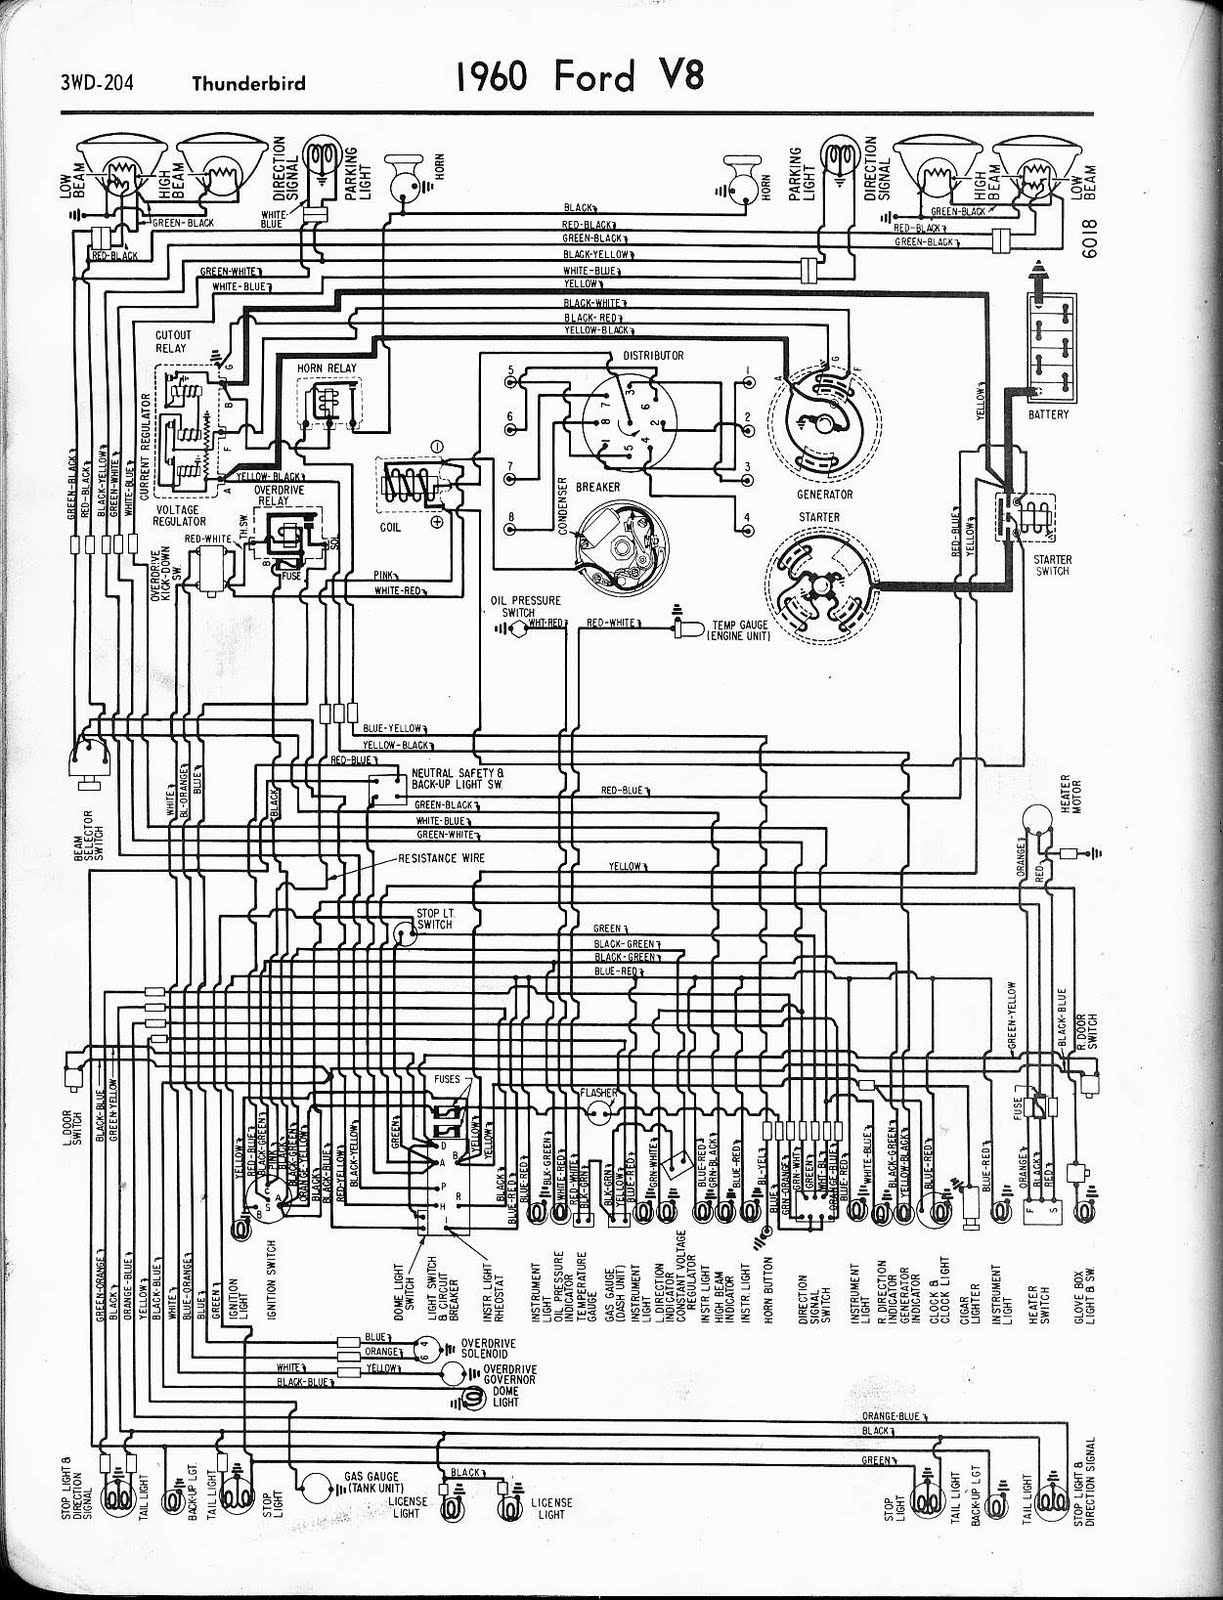 1960 triumph wiring diagram wiring diagram free auto wiring diagram 1960 ford v8 thunderbird wiring diagram rh autowiringdiagram blogspot com amplifier wiring diagram amplifier wiring diagram asfbconference2016 Choice Image